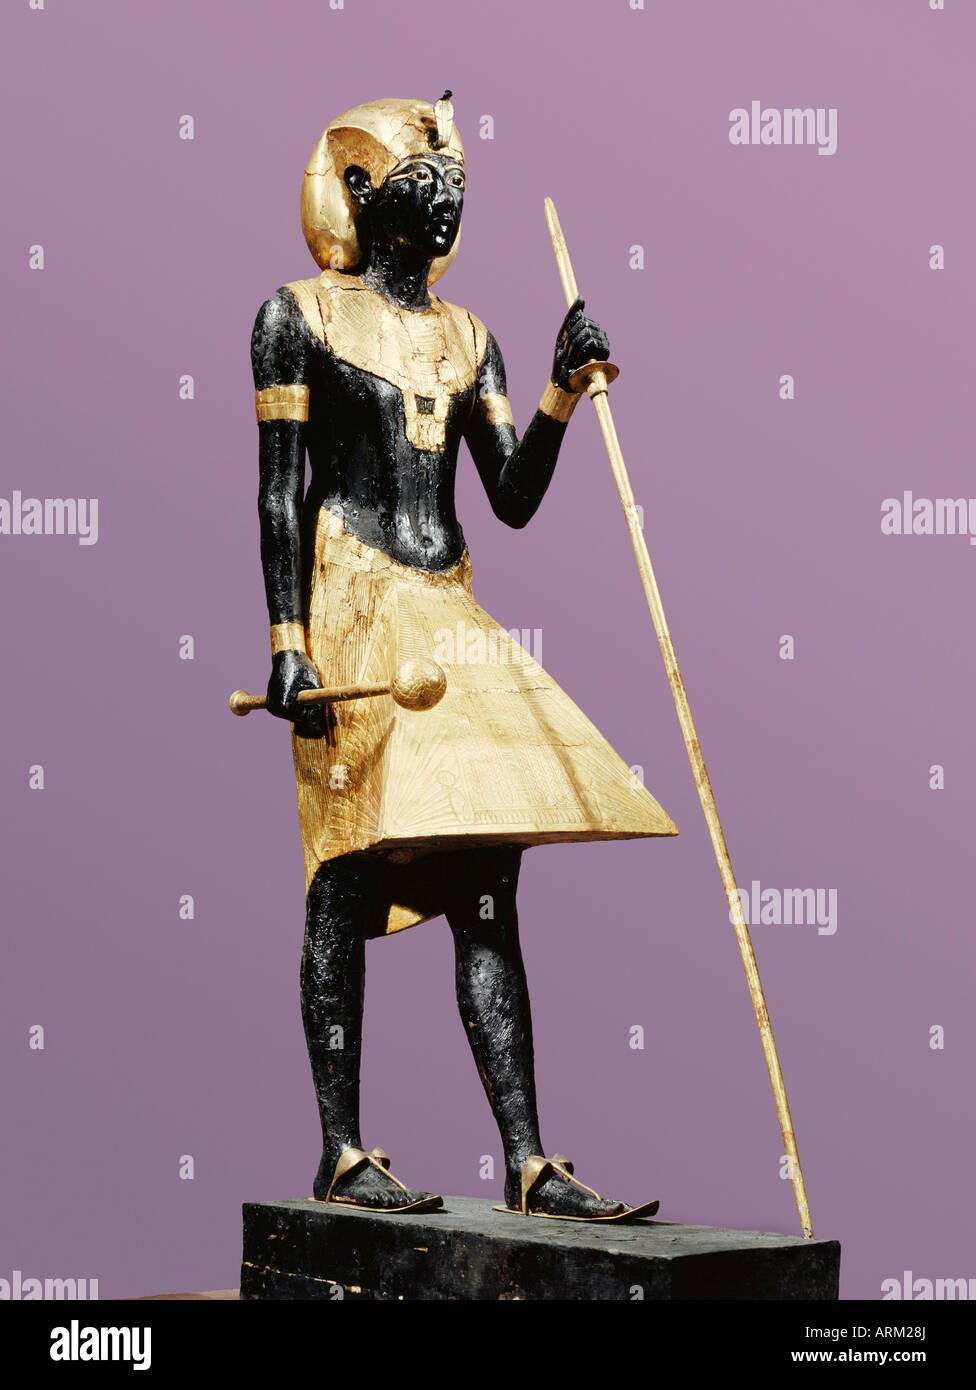 Life size statue of Tutankhamun made from black wood with applied gilded plaster, from the tomb of the pharaoh Tutankhamun - Stock Image